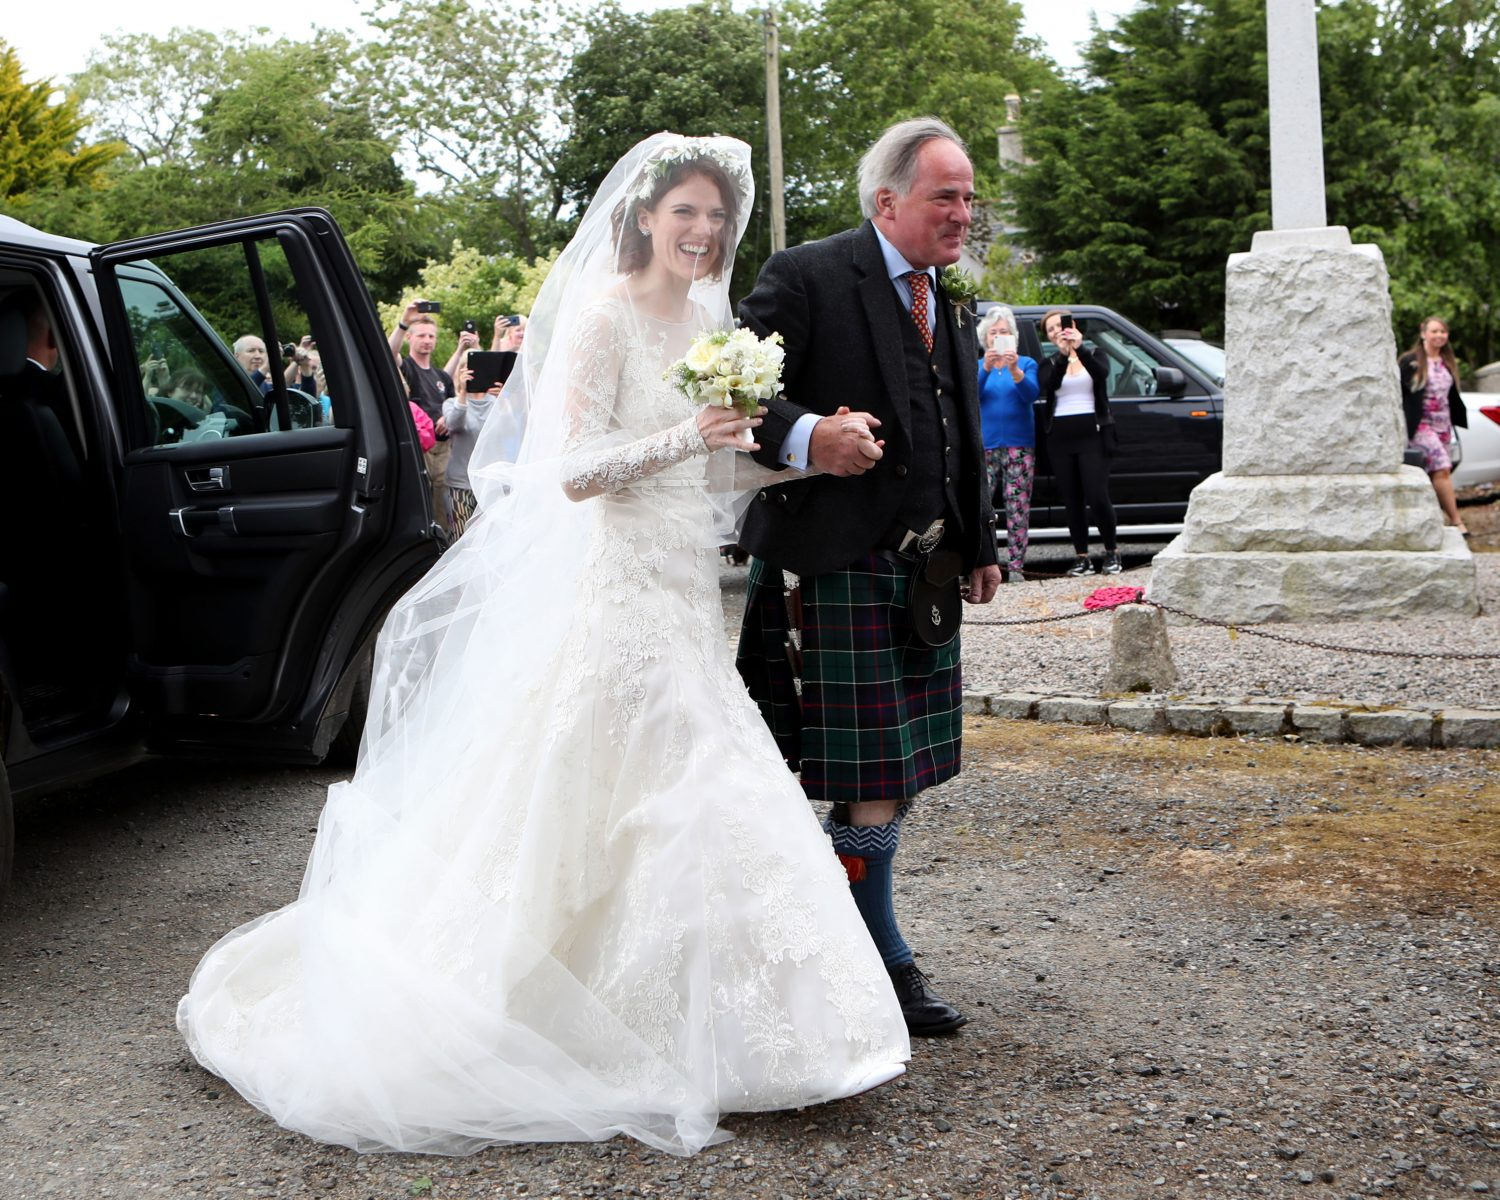 Game of Thrones' Rose Leslie Wears Lace Wedding Dress as She